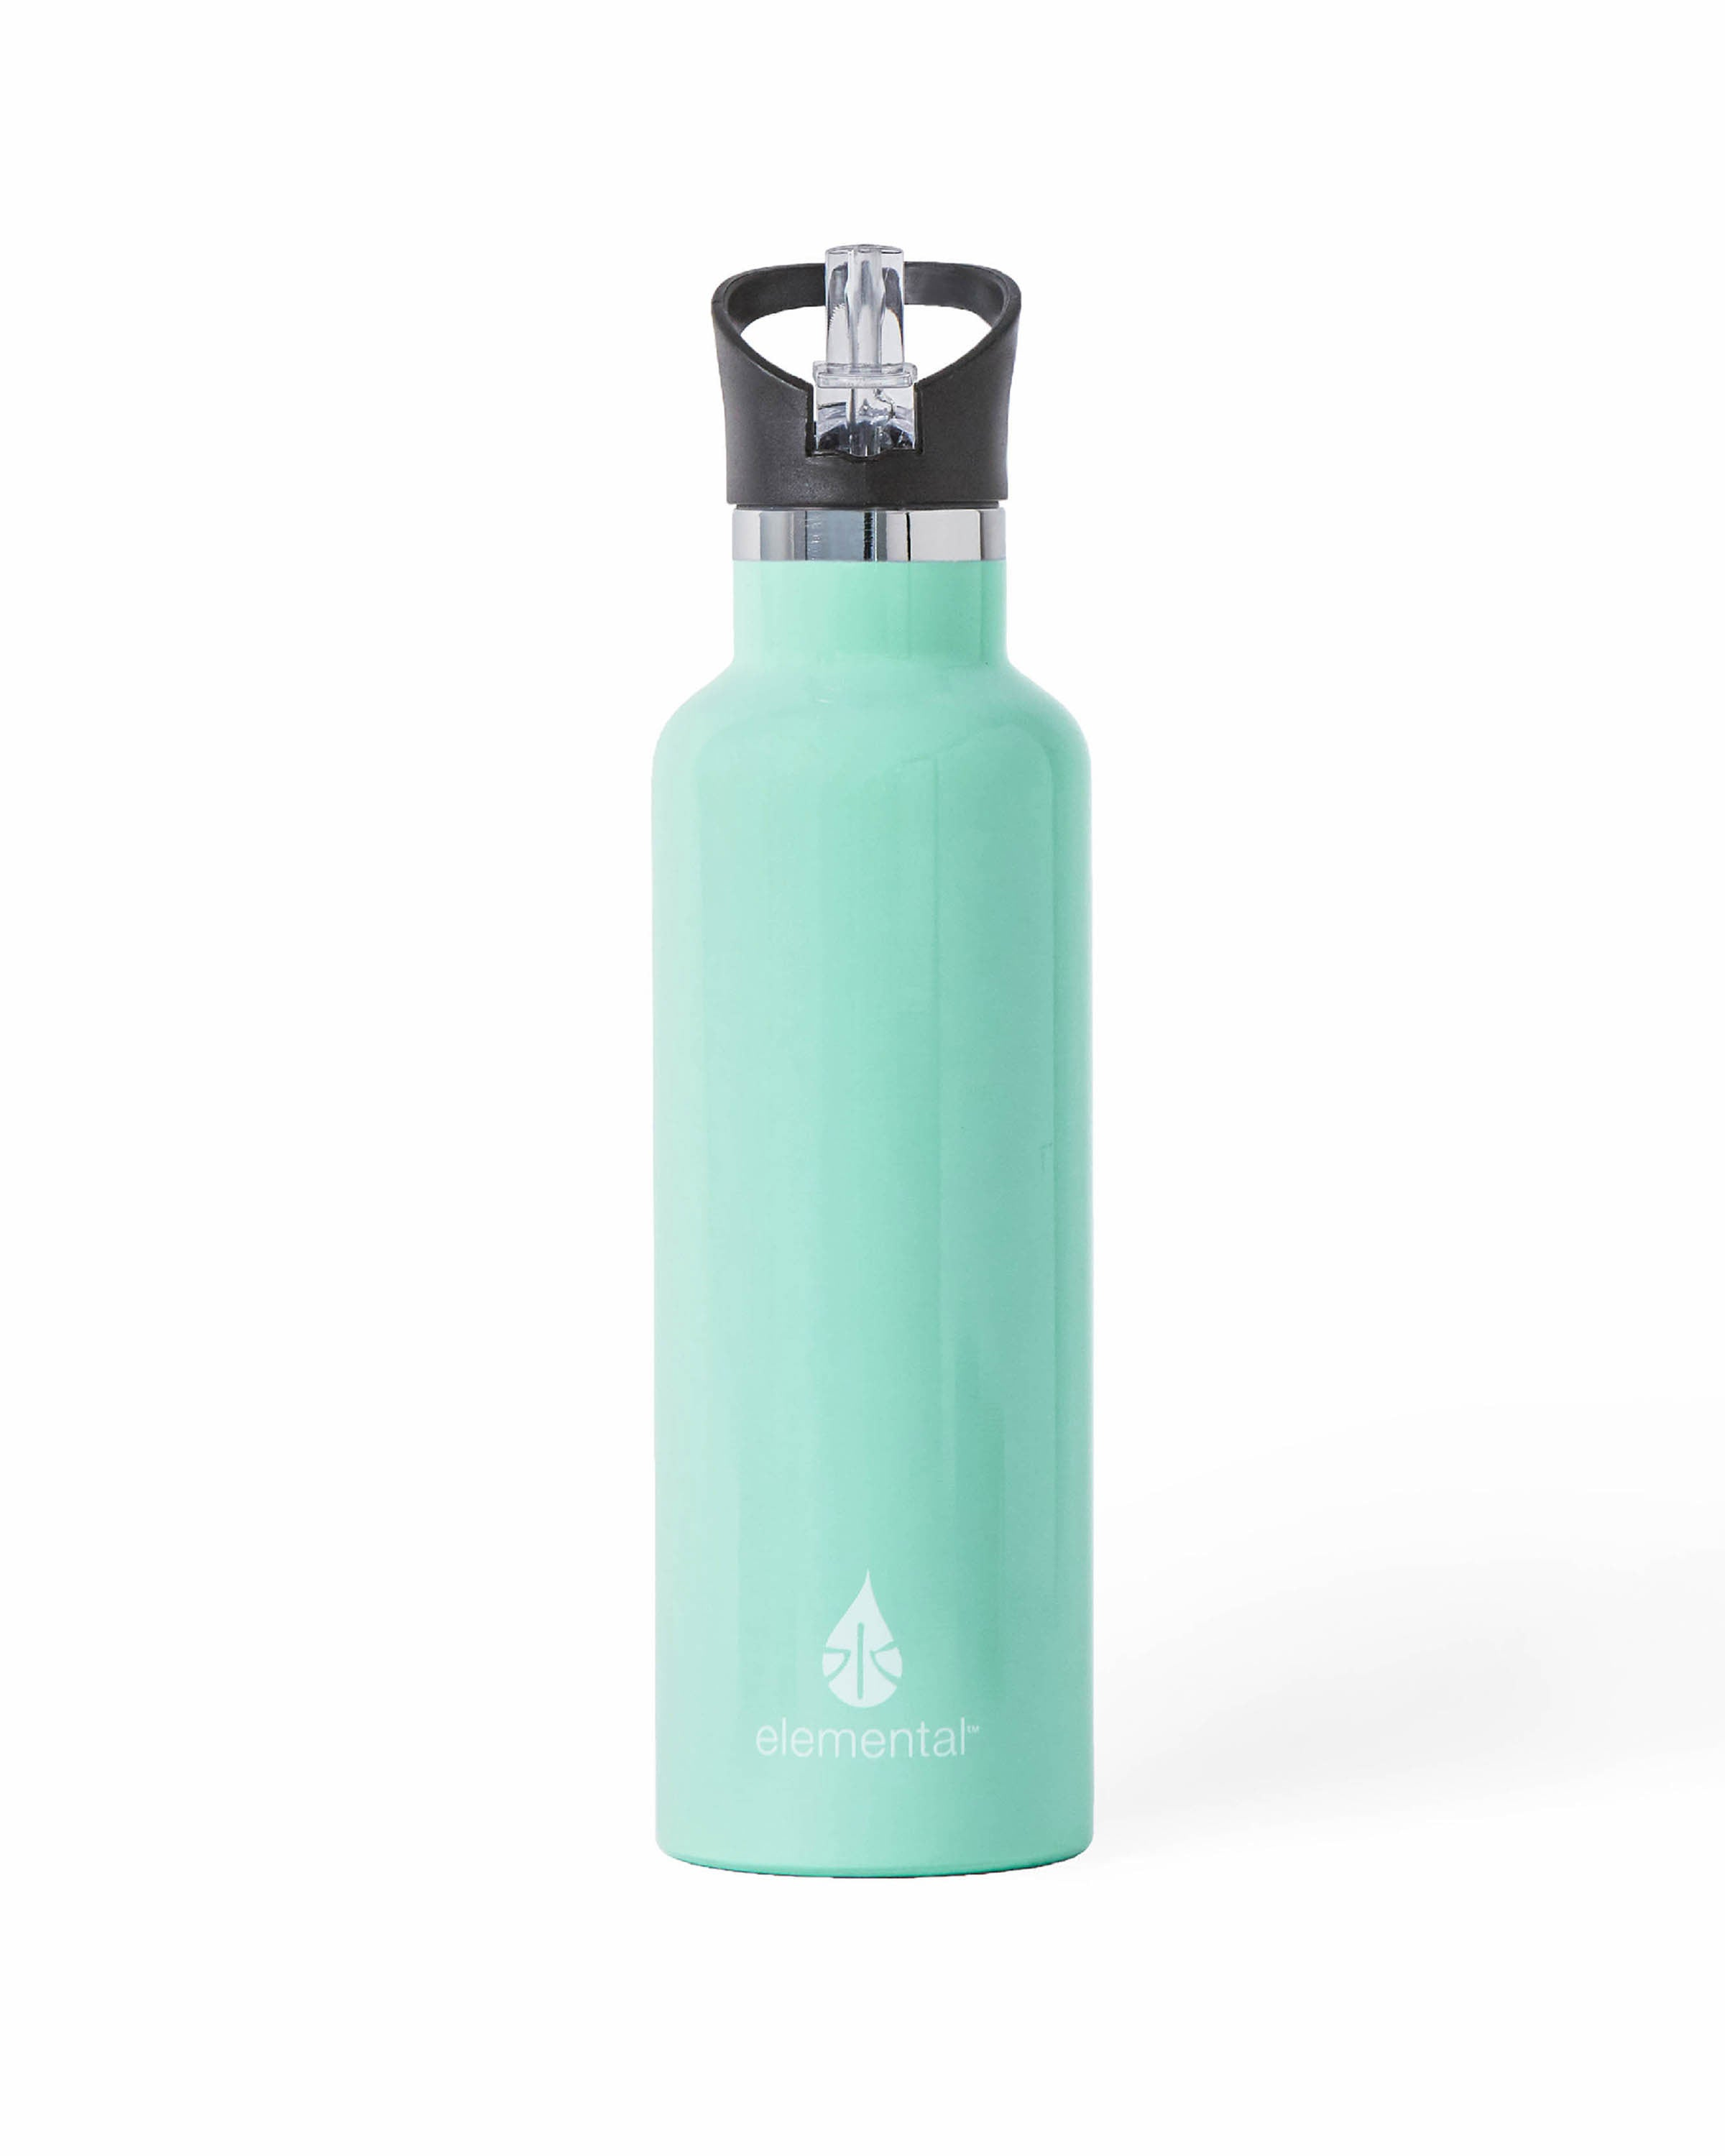 Elemental Stainless Steel Sport Water Bottle - 25oz Gloss Mint - Elemental Gifts